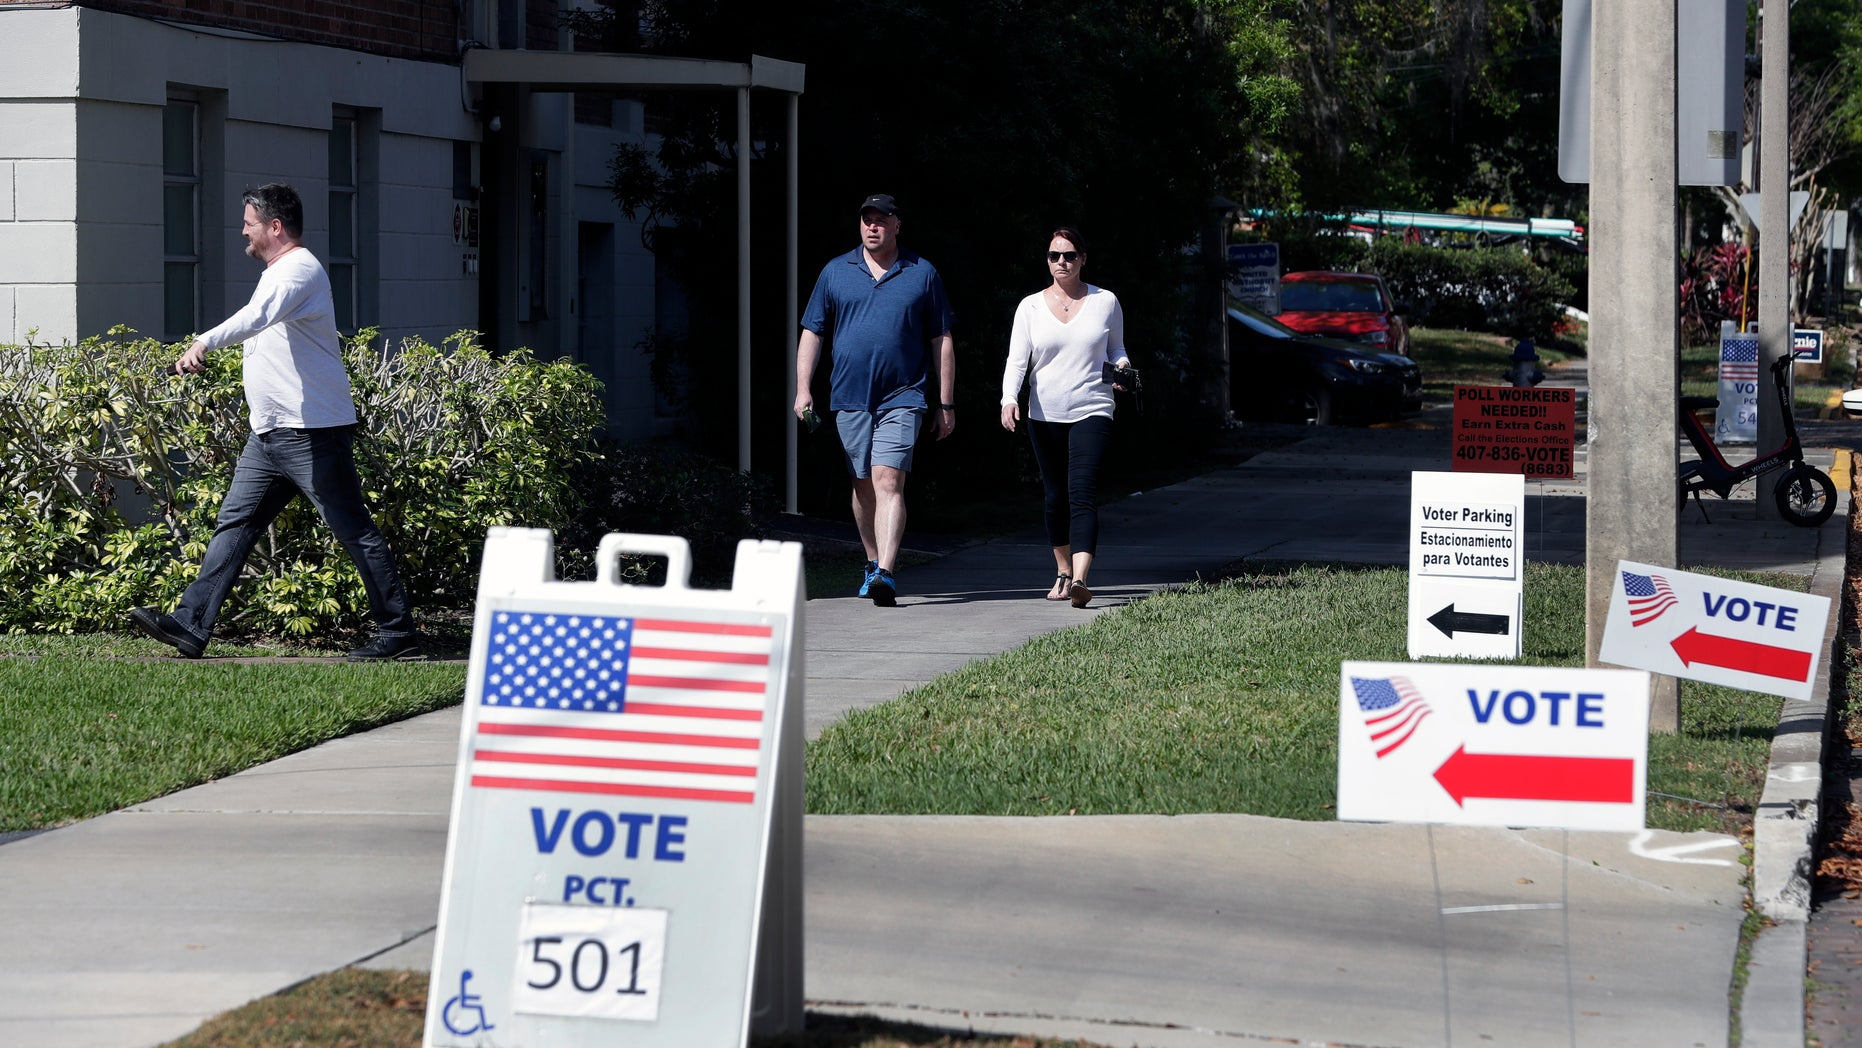 Florida Republicans close in on Democrats' voter registration numbers